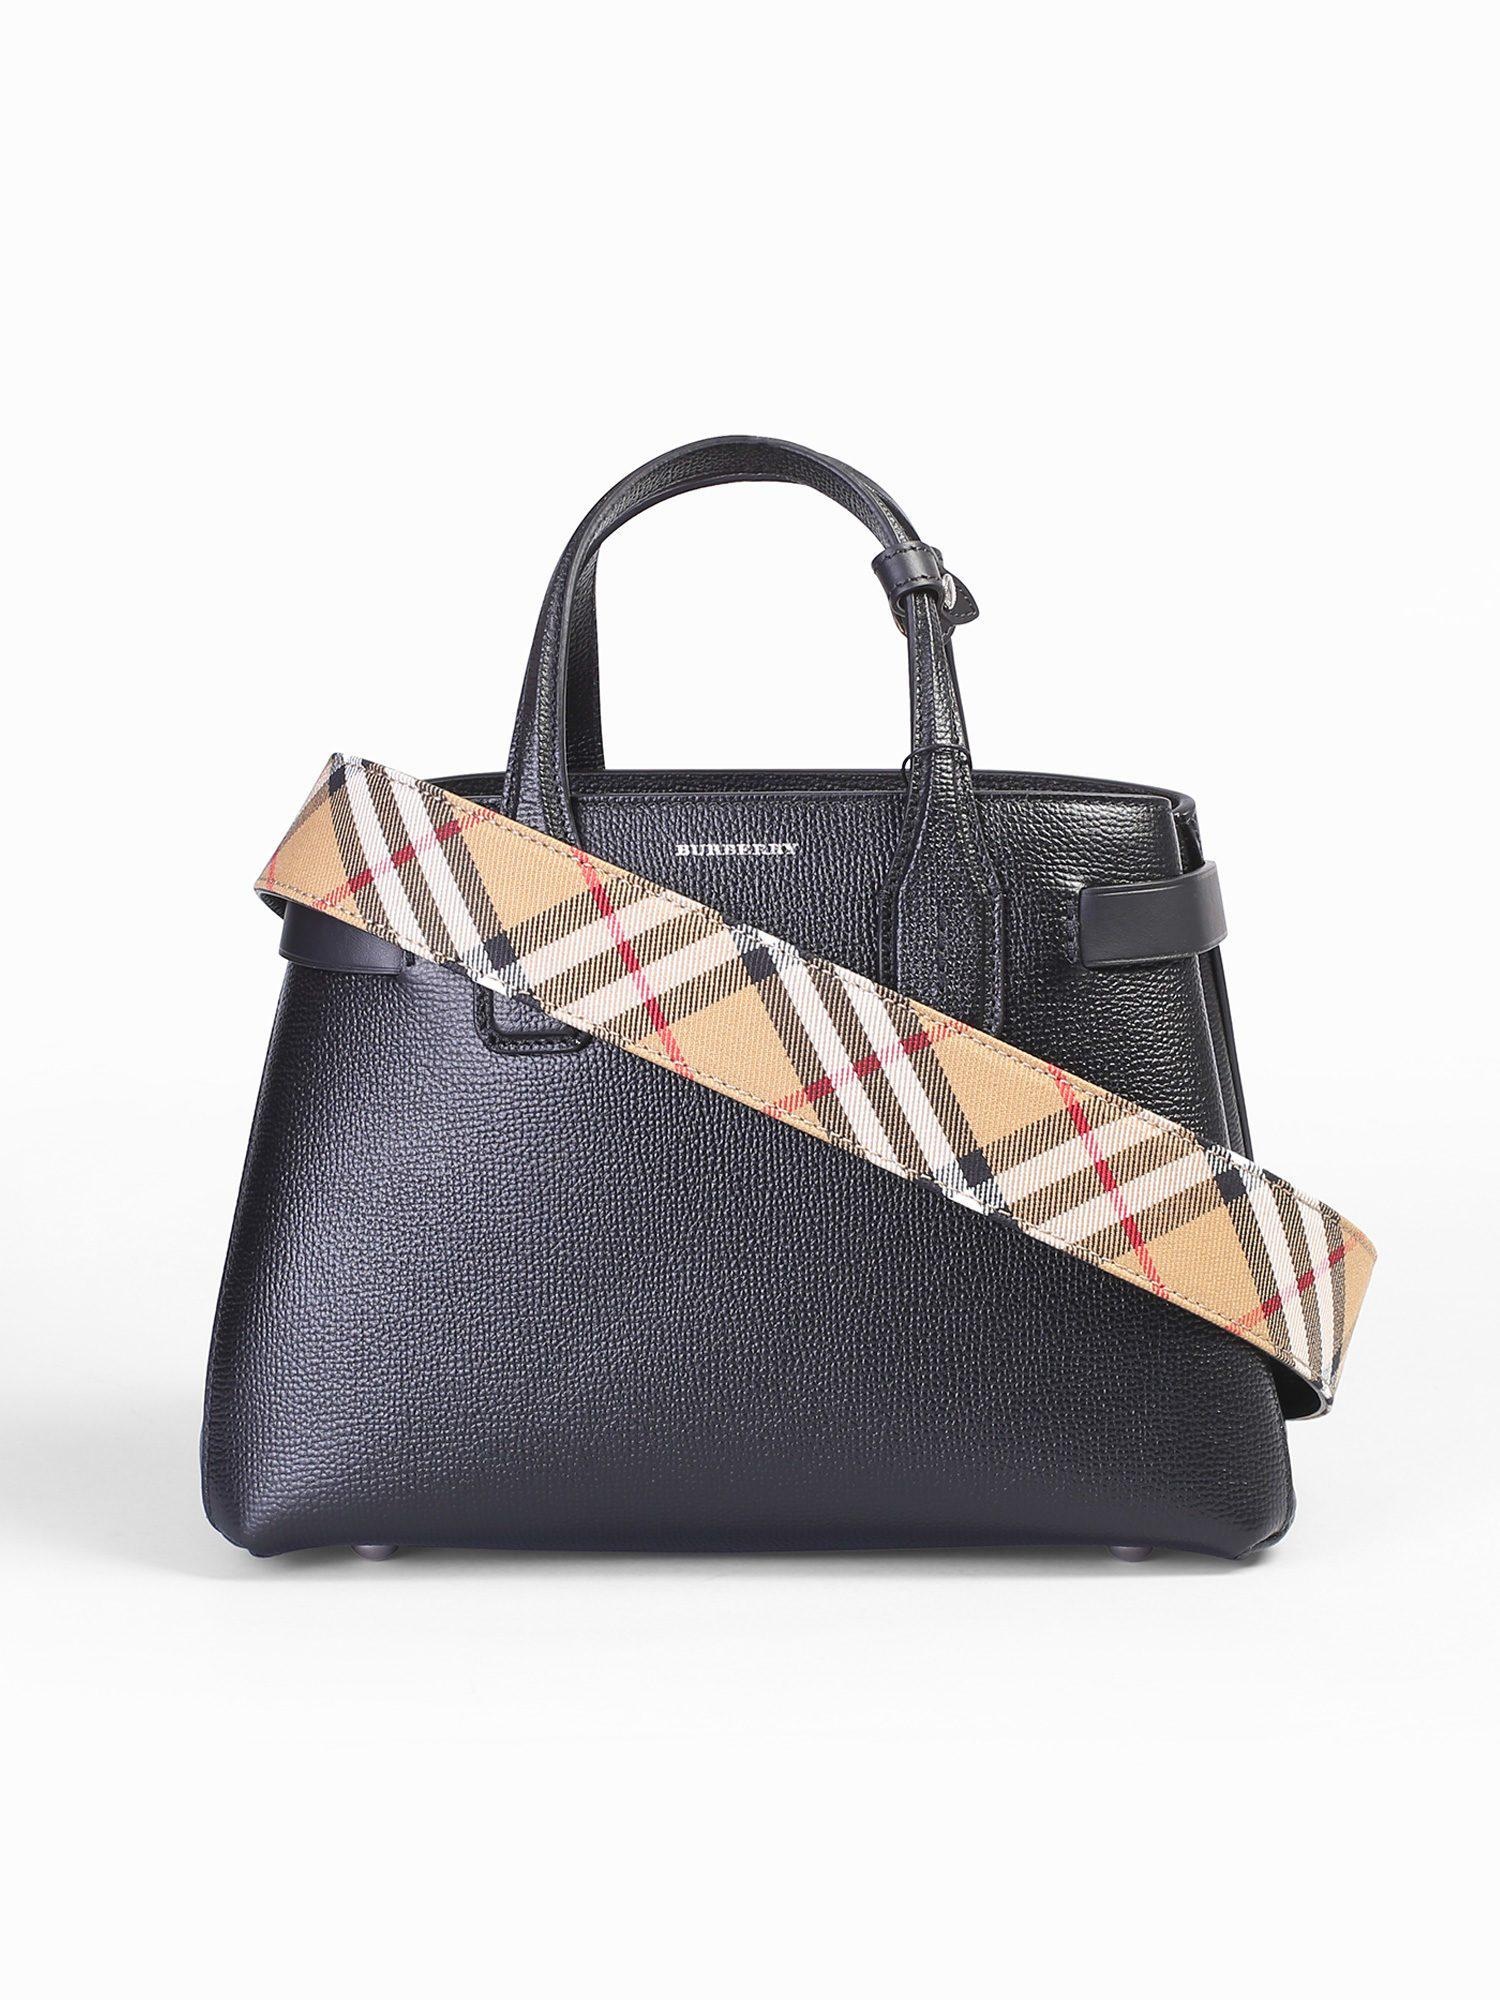 6a75f2616eeb Burberry. Women s Small Banner Leather Bag